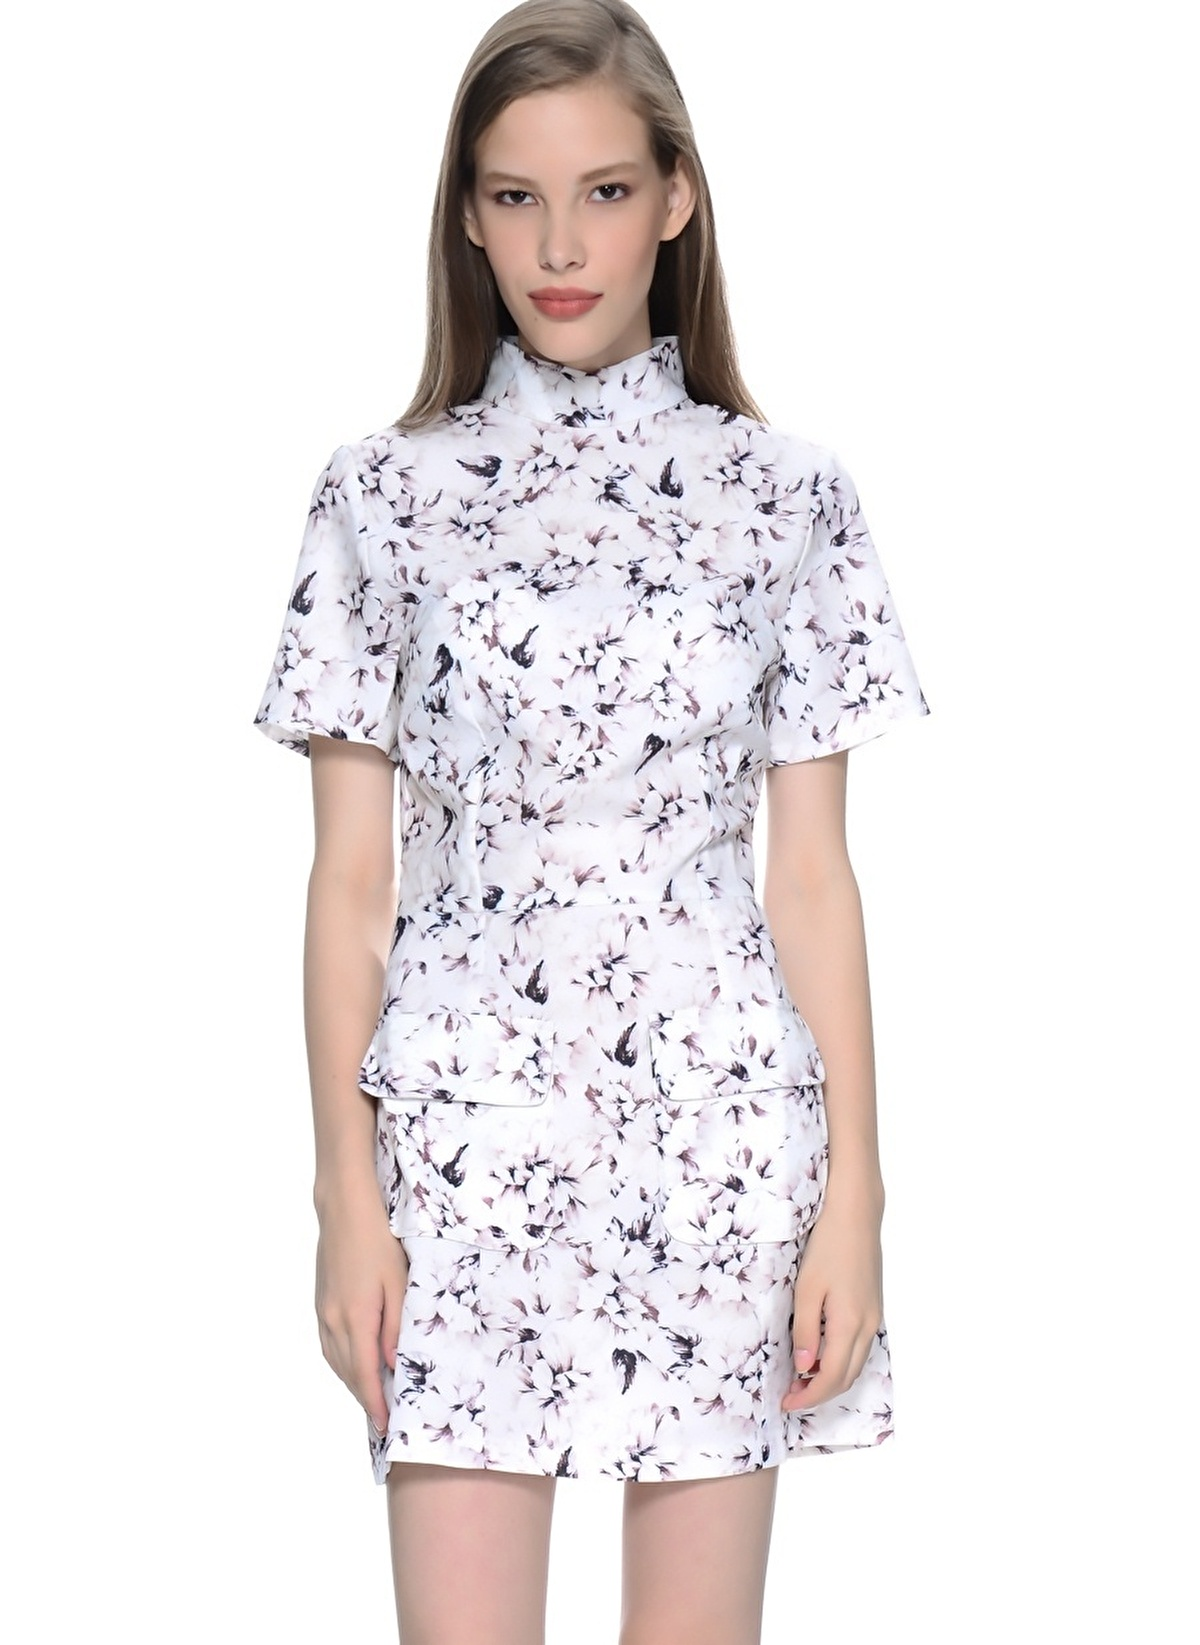 Girls On Film Elbise D2768q1a Floral Print High – 66.99 TL